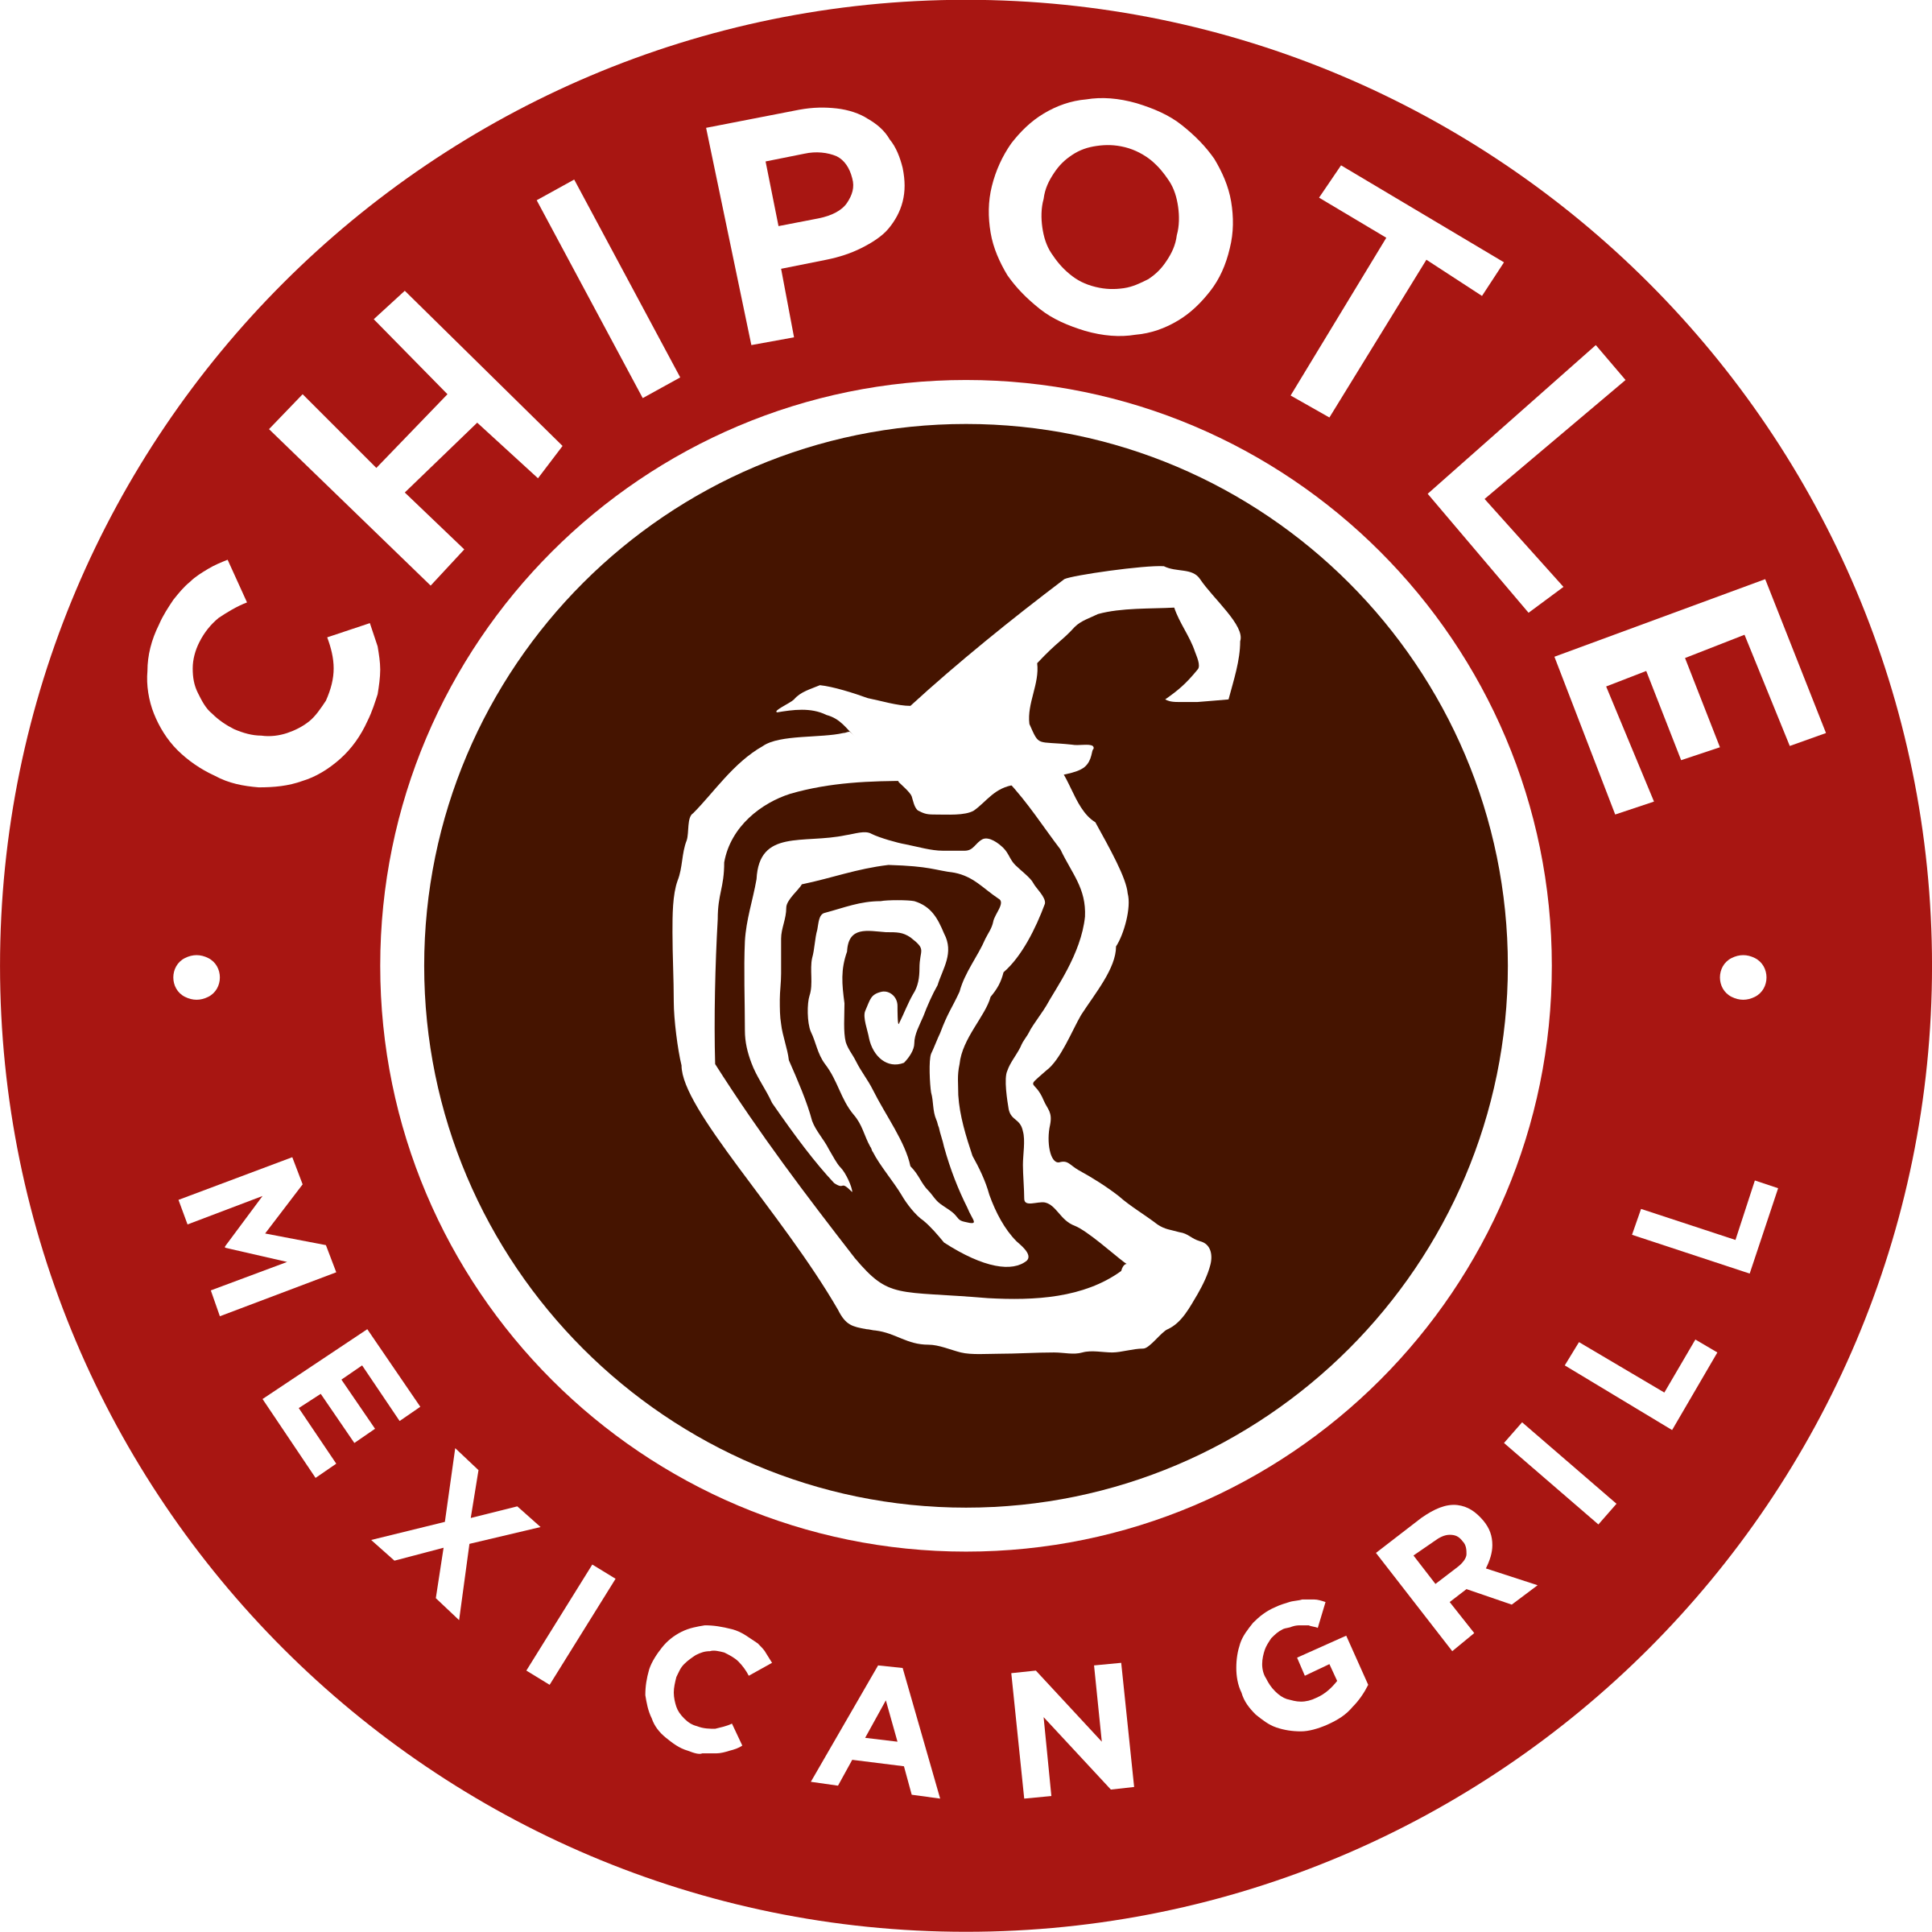 chipotle-mexican-grill-logo-png-transparent.png